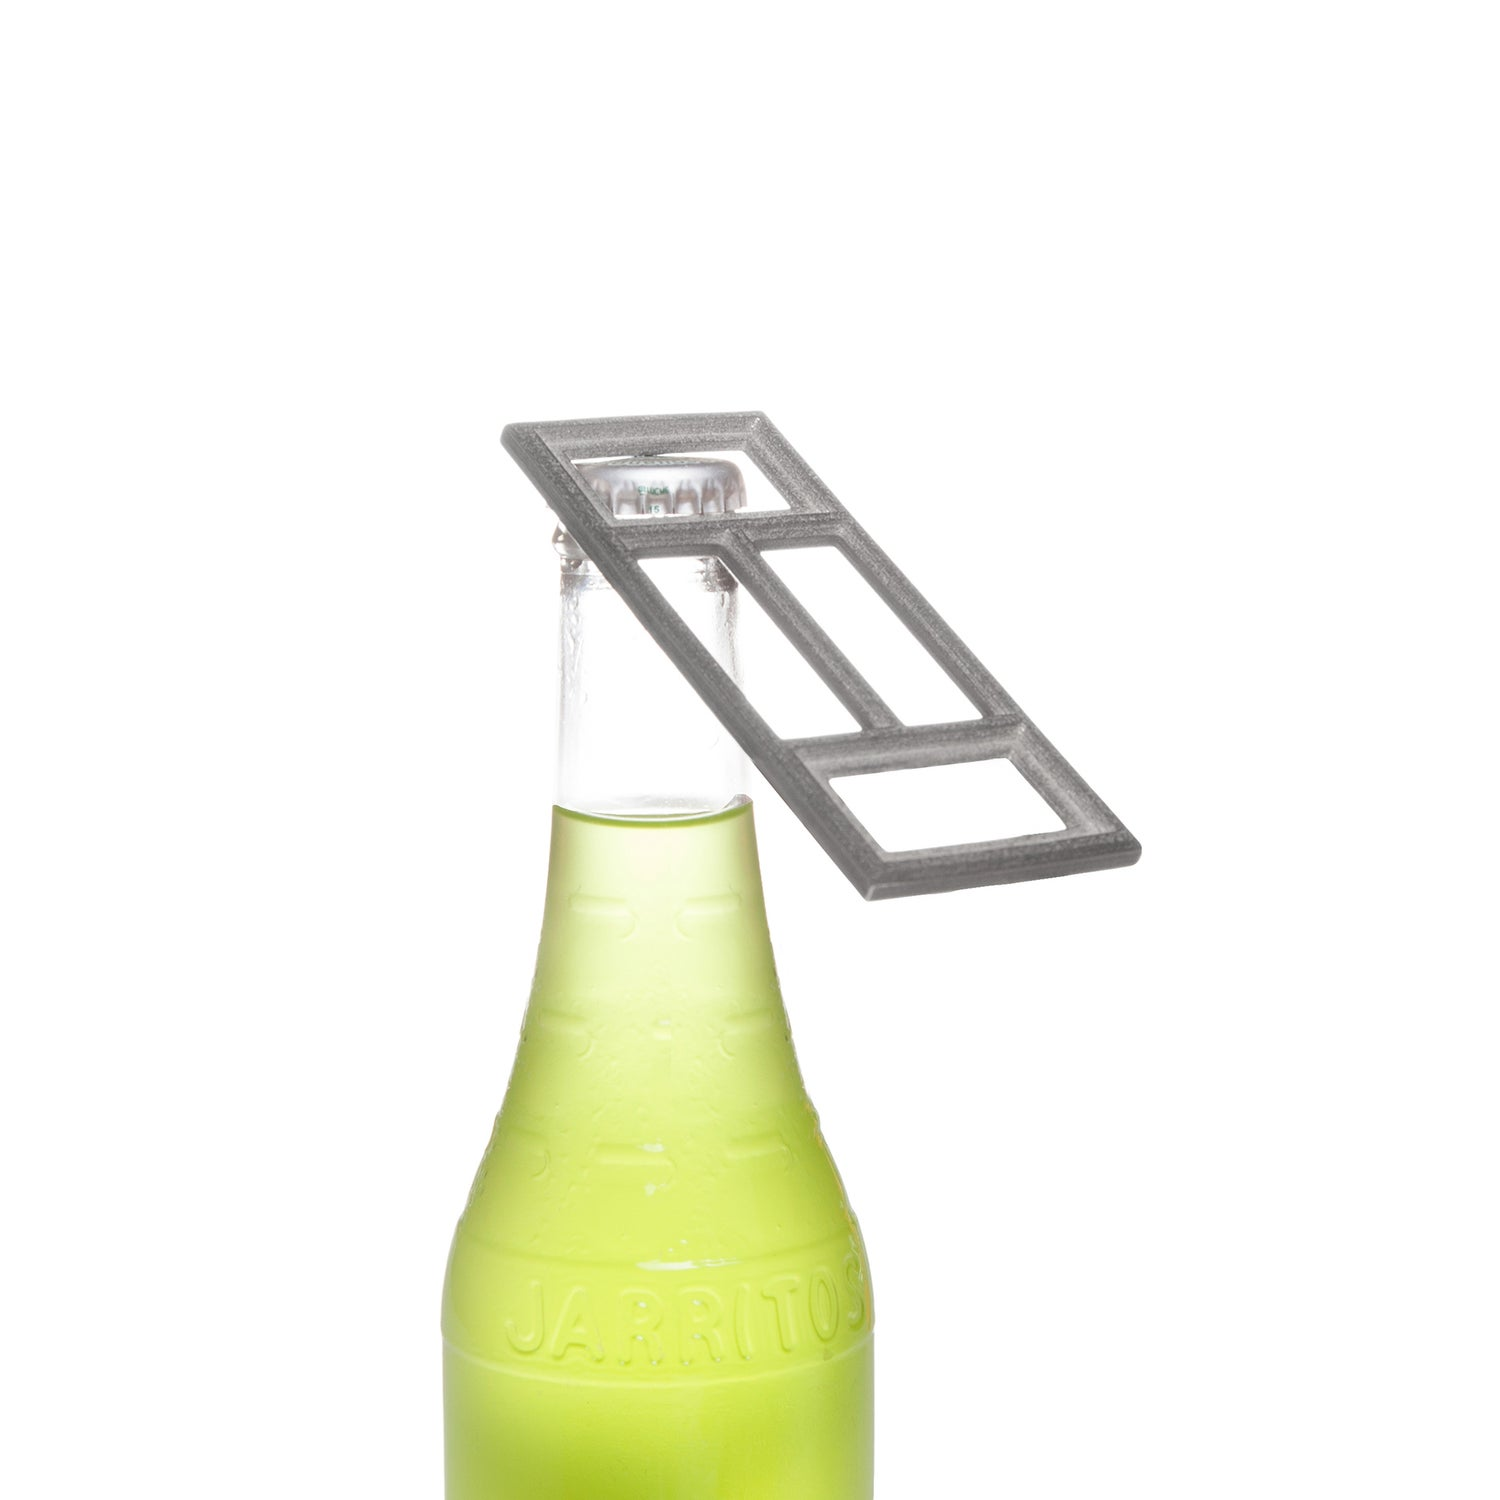 Image of Vento Bottle Opener